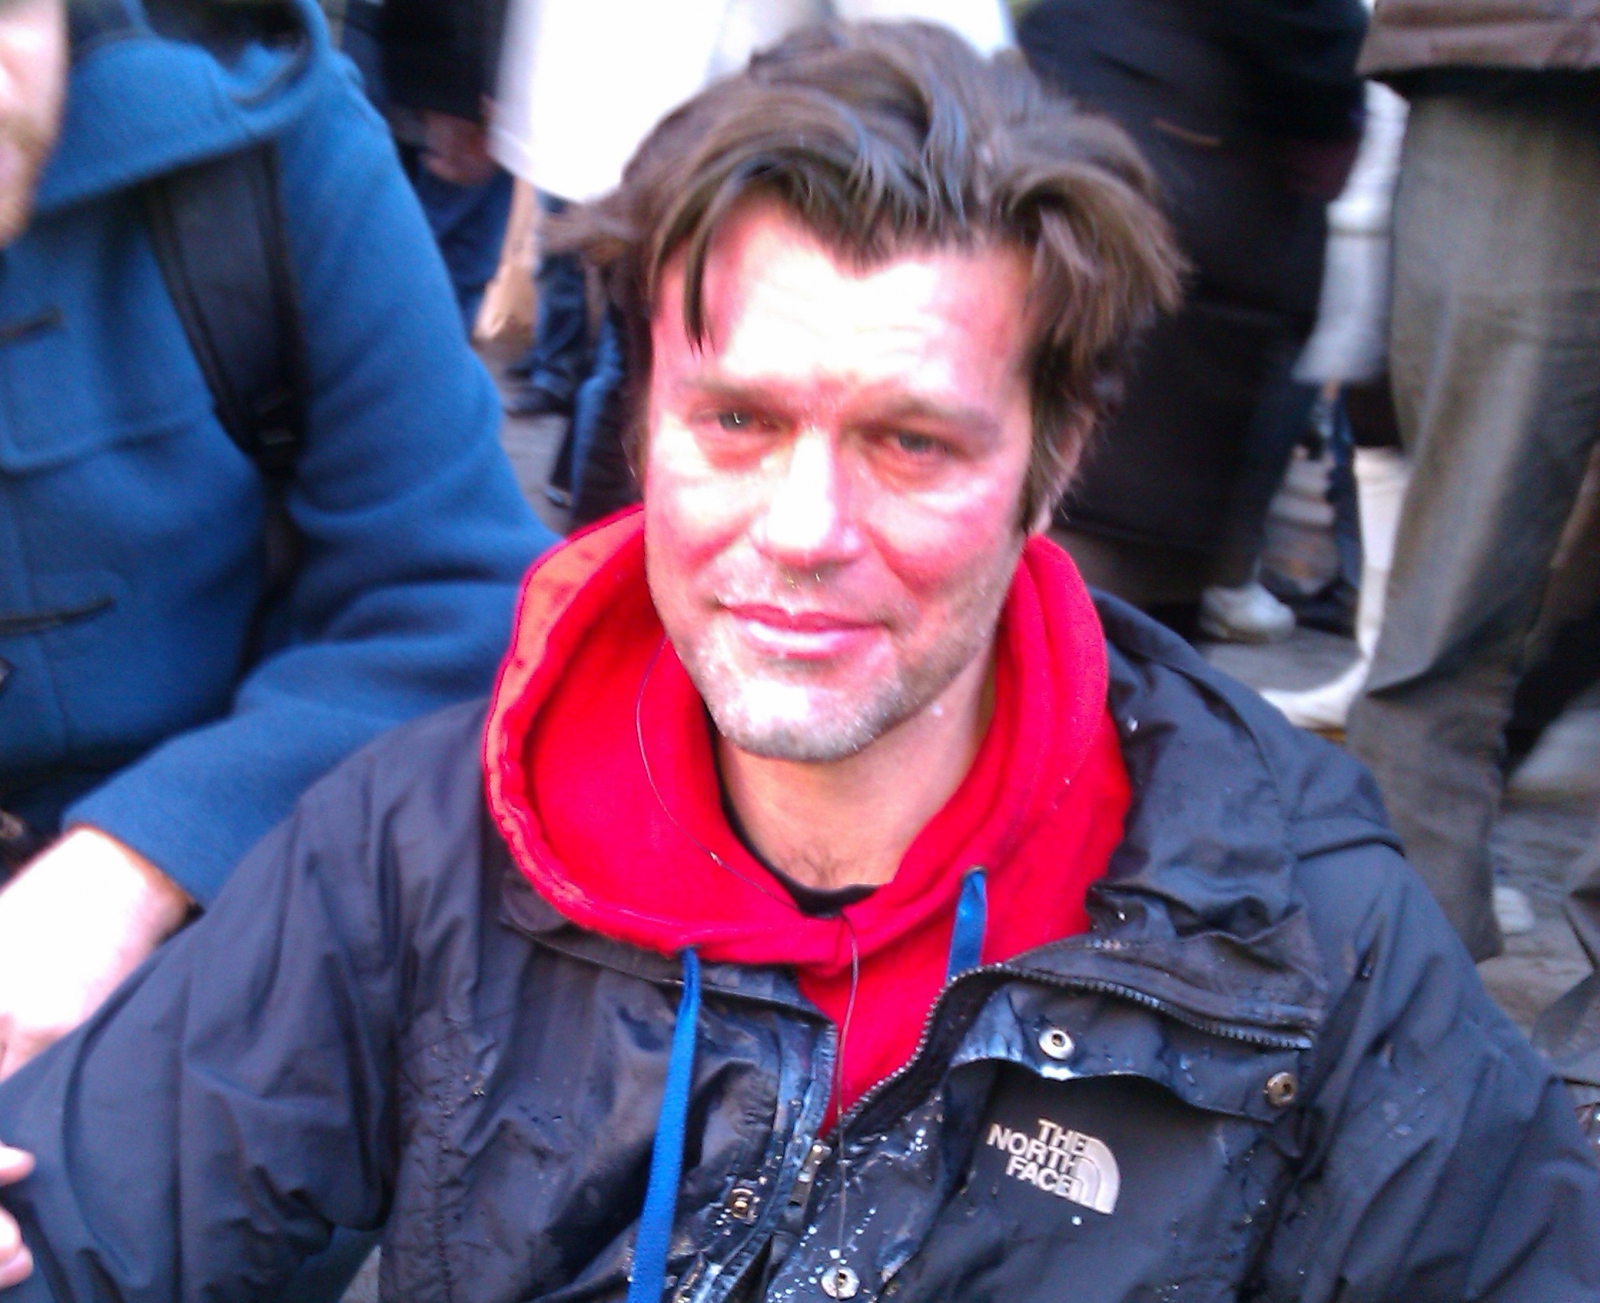 Uk Uncut activist Mike Firth after police hit him with CS spray during protest